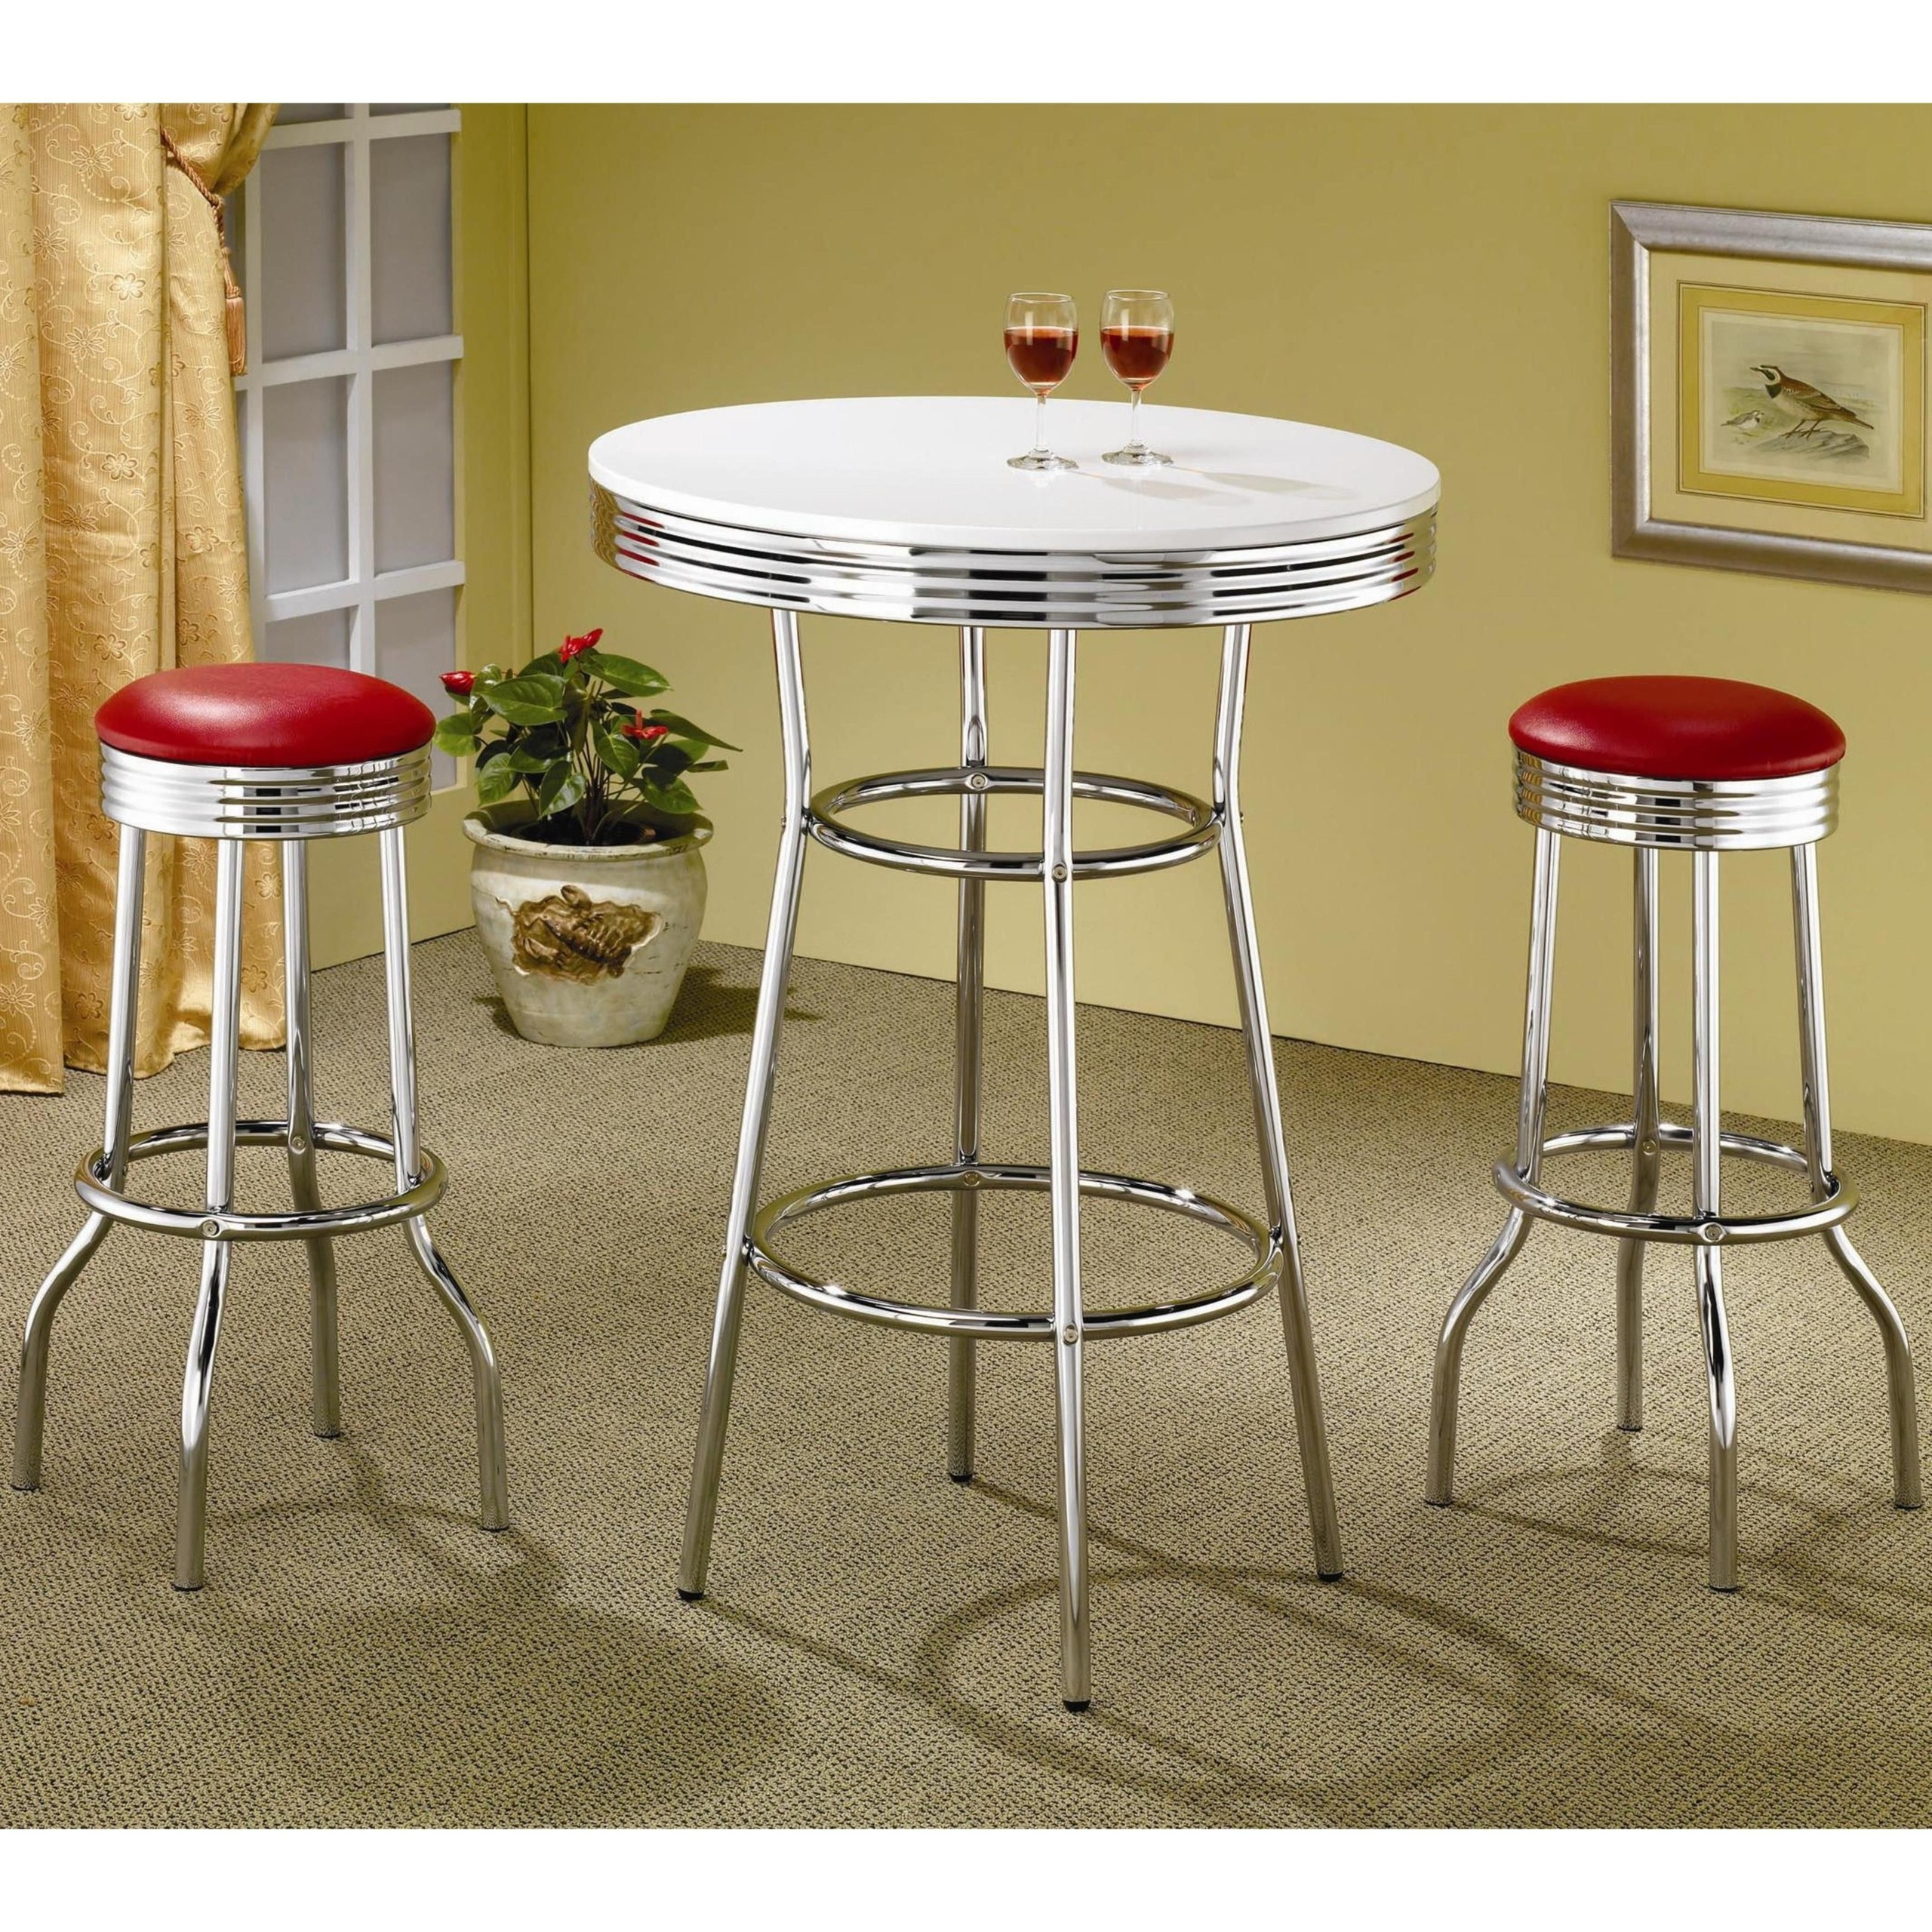 Etonnant High Top Pub Table Sets 3